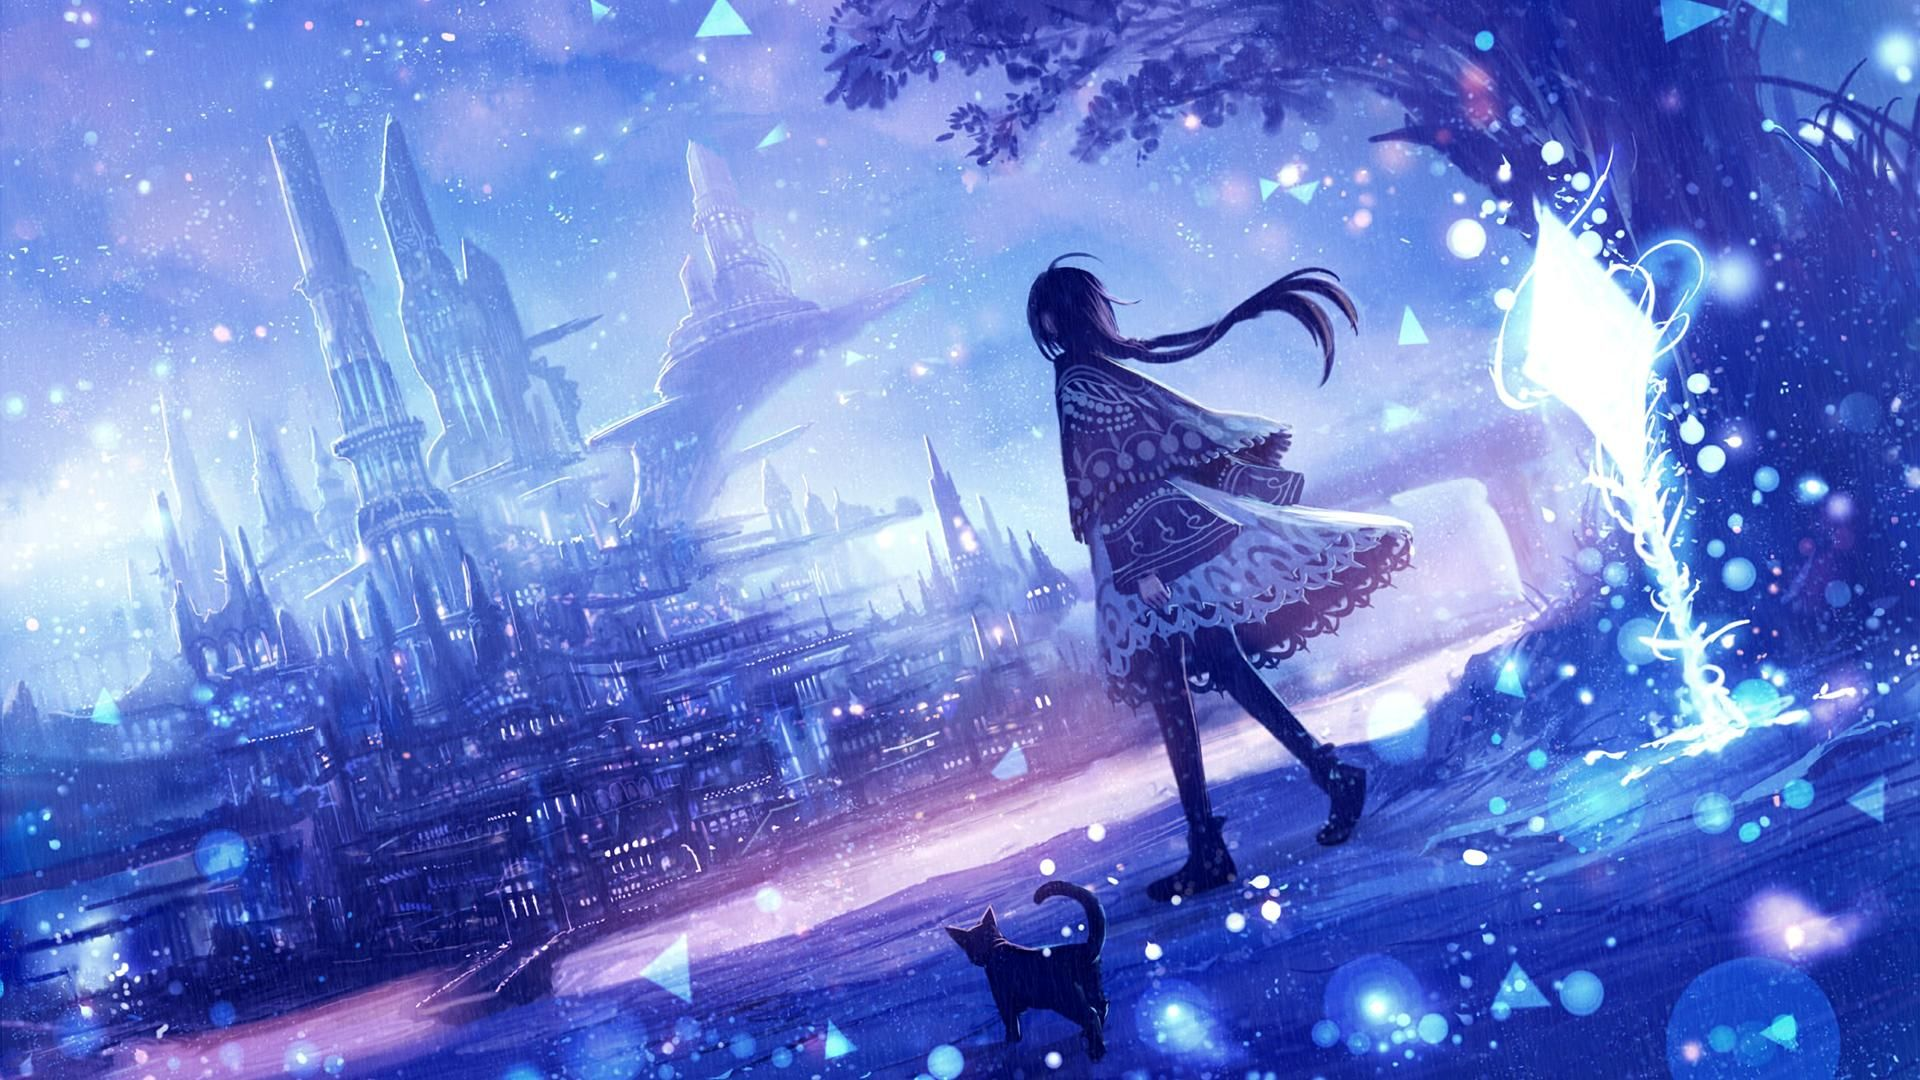 Mystical [Original] (1920x1080) Anime wallpaper